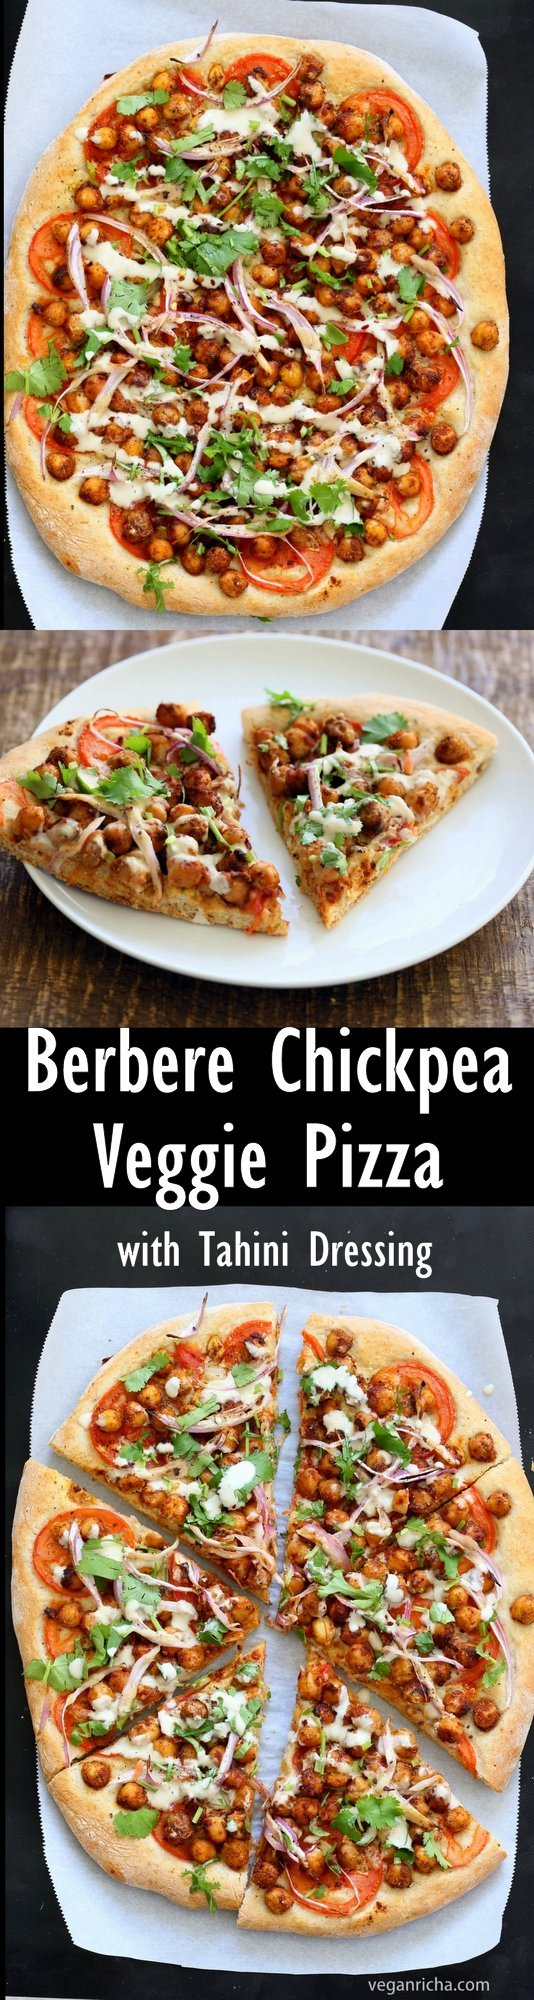 Ethiopian Berbere Chickpea Pizza with Tahini Garlic Dressing. Amazingly flavorful pizza. Dress with tahini dressing, vegan ranch or other creamy dressing. #Vegan #Soyfree #Nutfree #Recipe. #Glutenfree Crust option #veganricha | VeganRicha.com